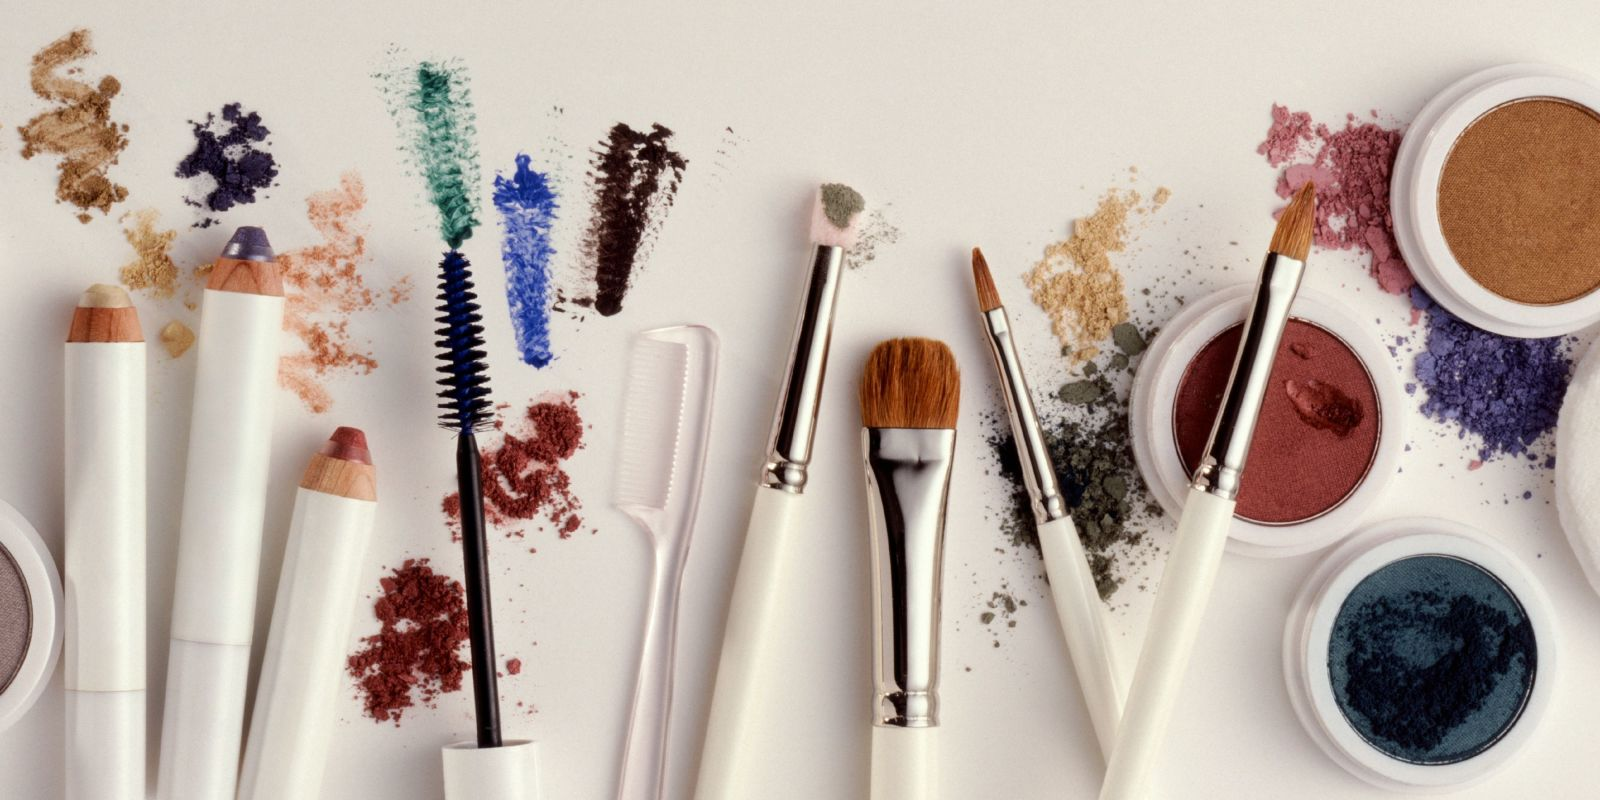 Best Sale On Beauty Products This Week at Styleneur